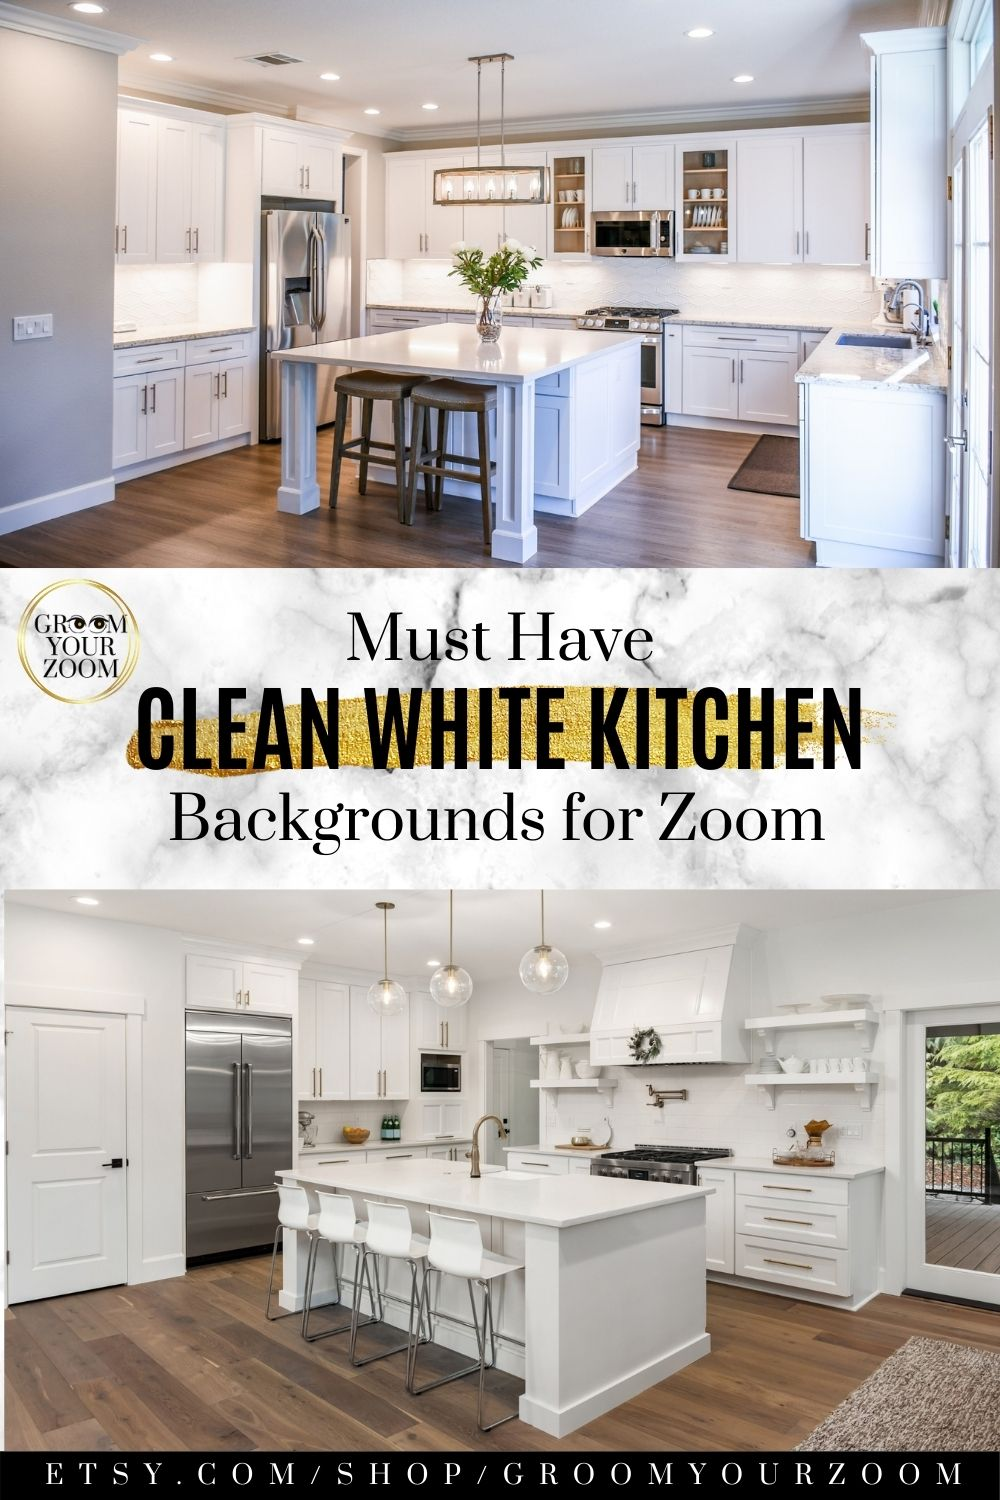 Kitchen I Zoom Background 4 Virtual Backgrounds For Video Call Home Living Stock Photo Digital Download White Kitchen Kitchen Background Home